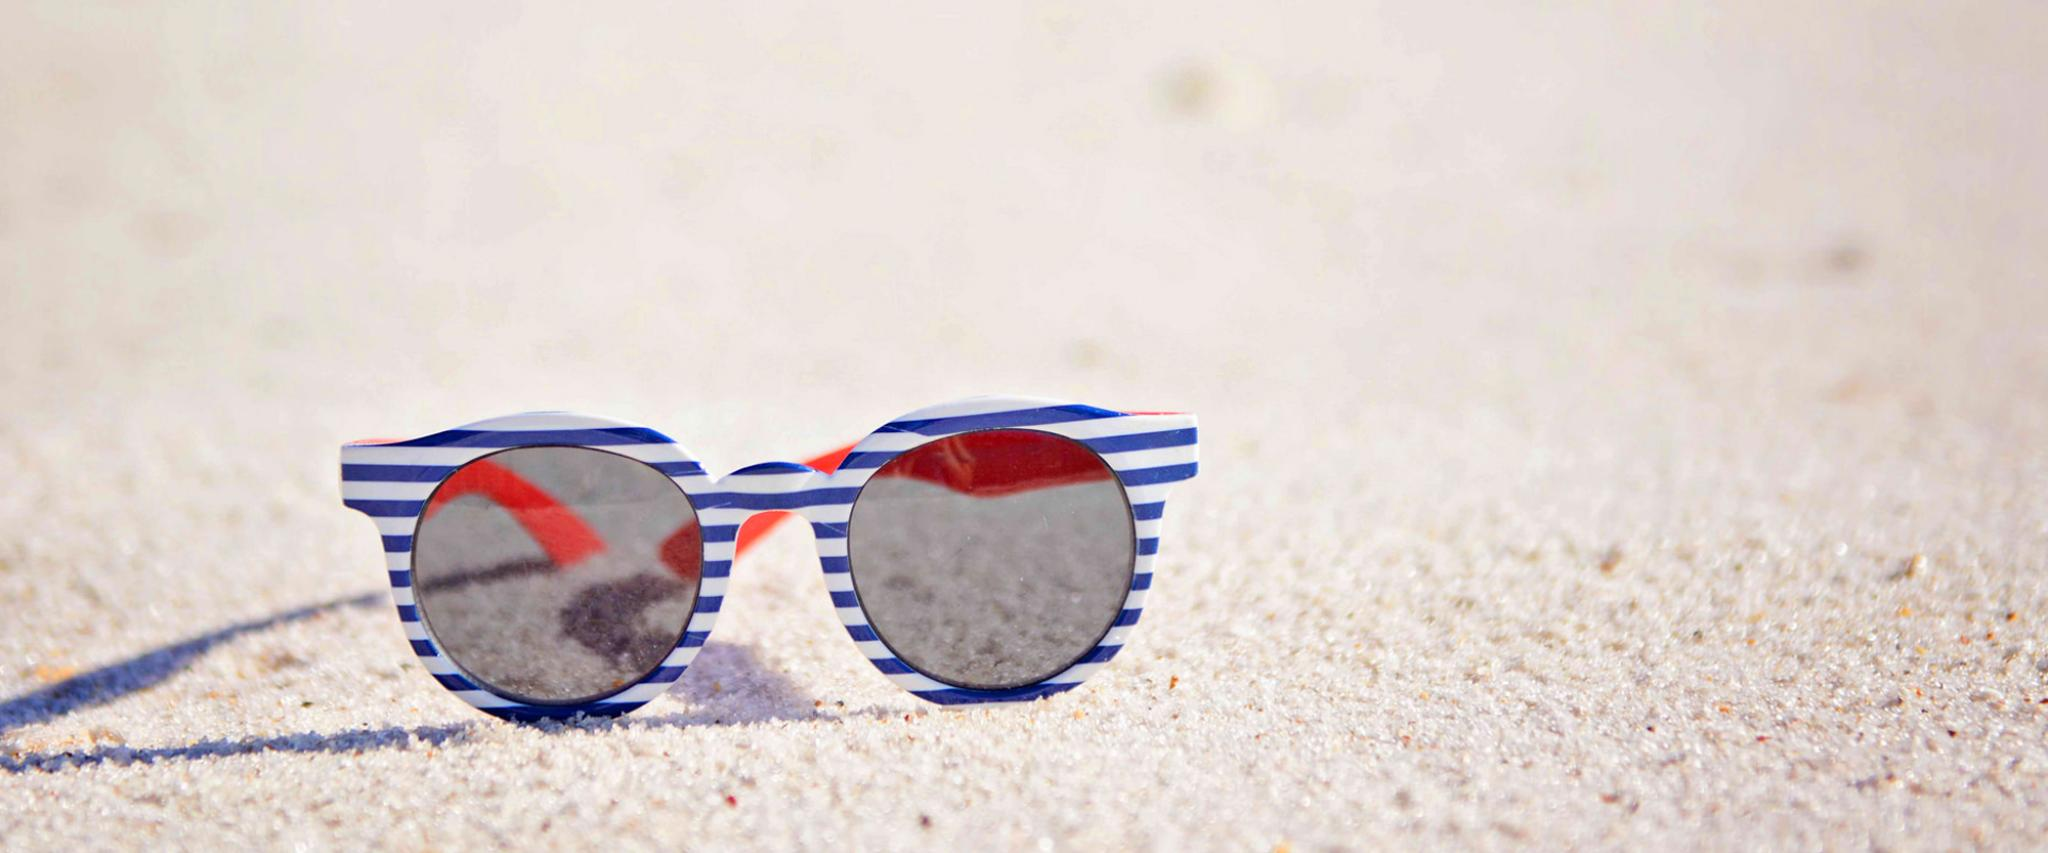 Patriotic Sunglasses on Alabama's White Sand Beaches